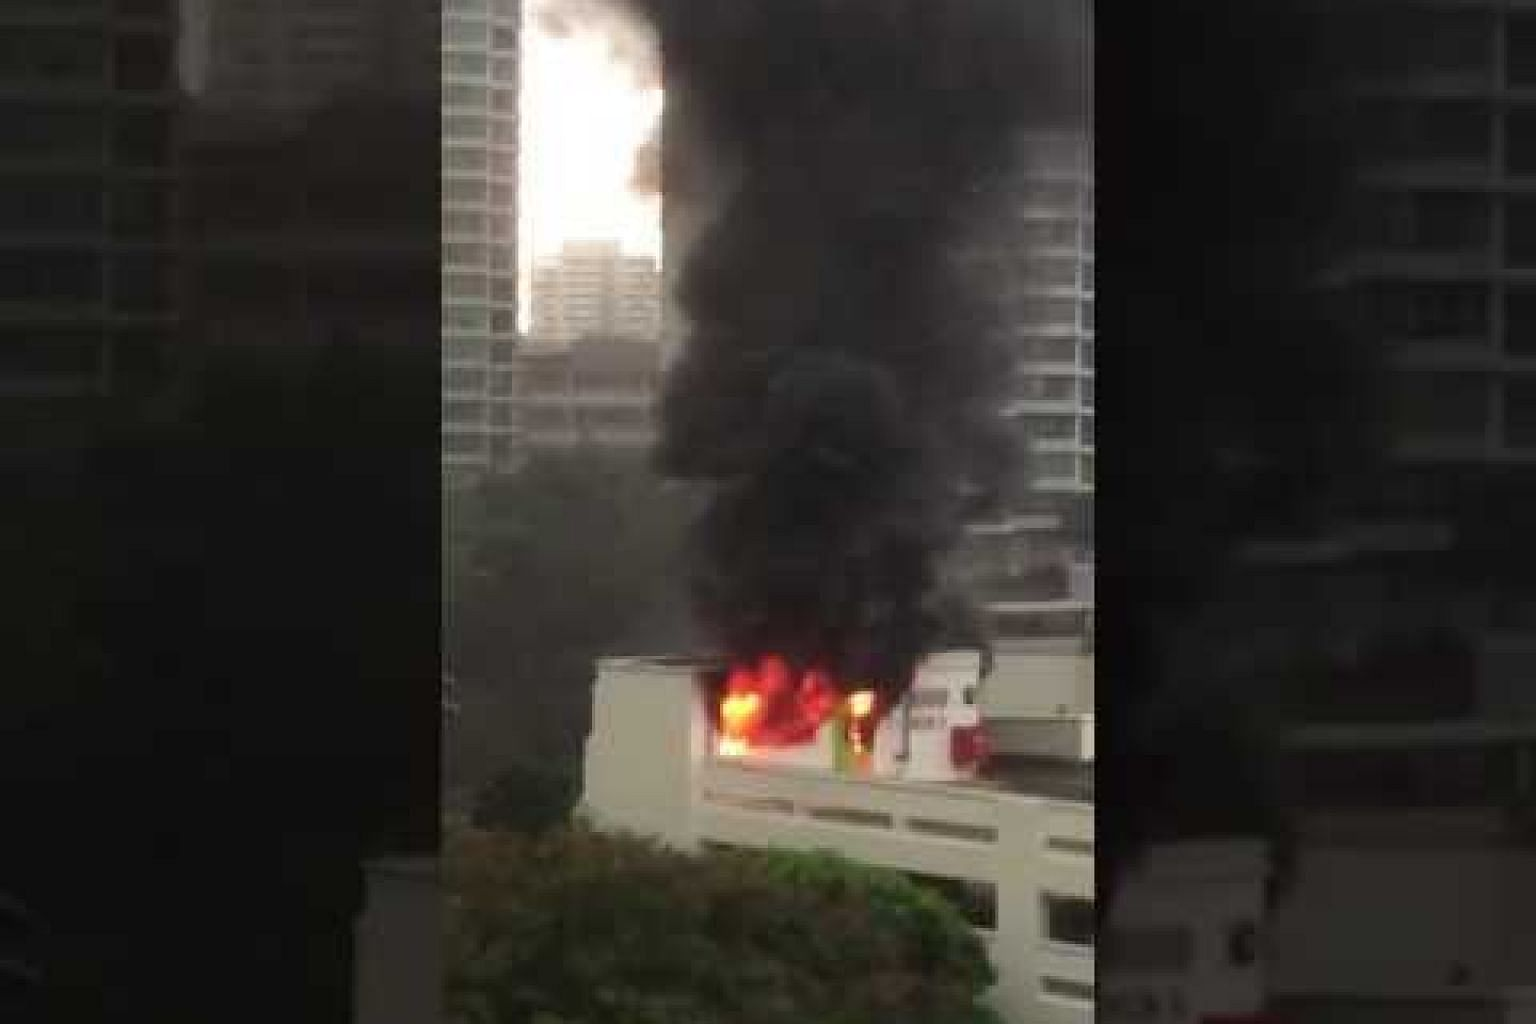 Fire at Bishan St 24